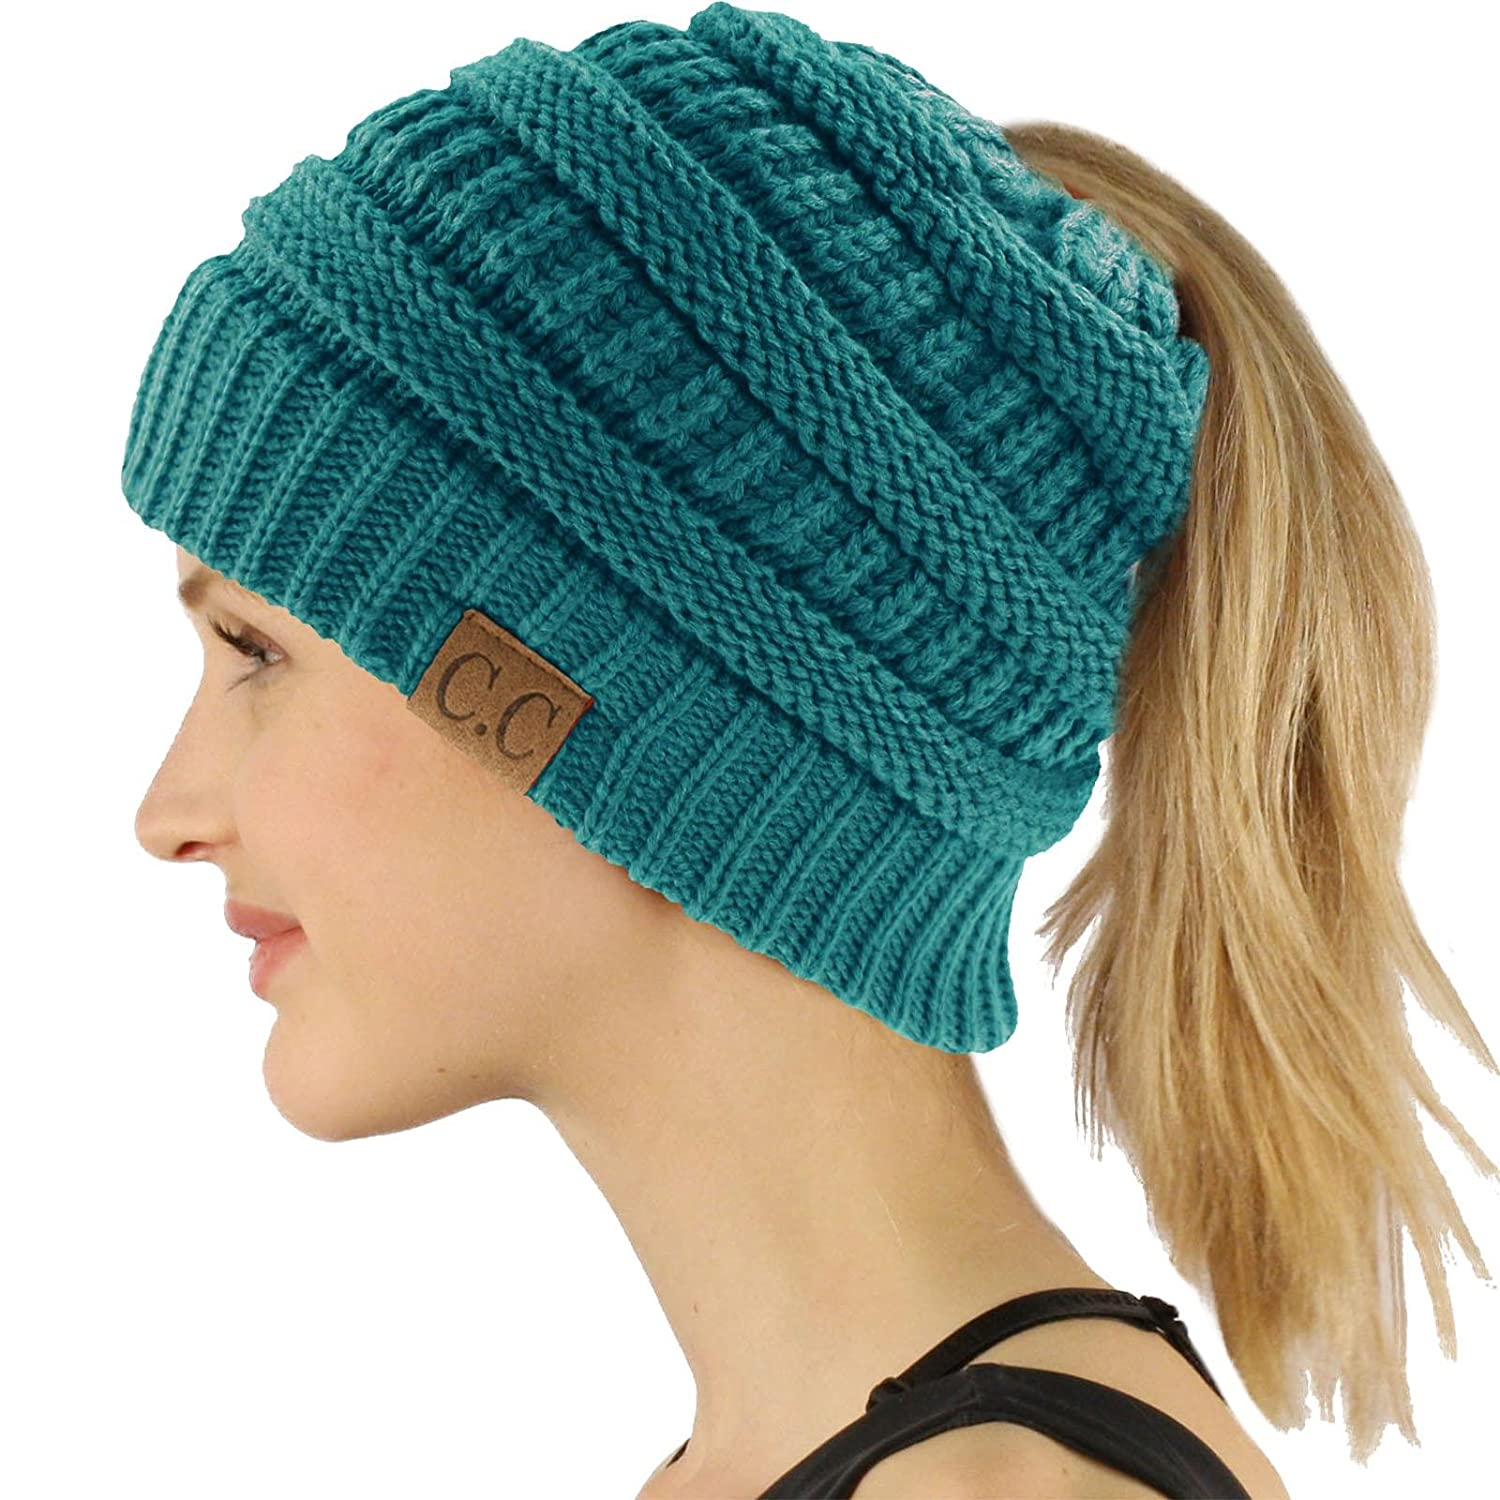 Solid Teal Ponytail Messy Bun BeanieTail Soft Winter Knit Stretchy Beanie Hat Cap